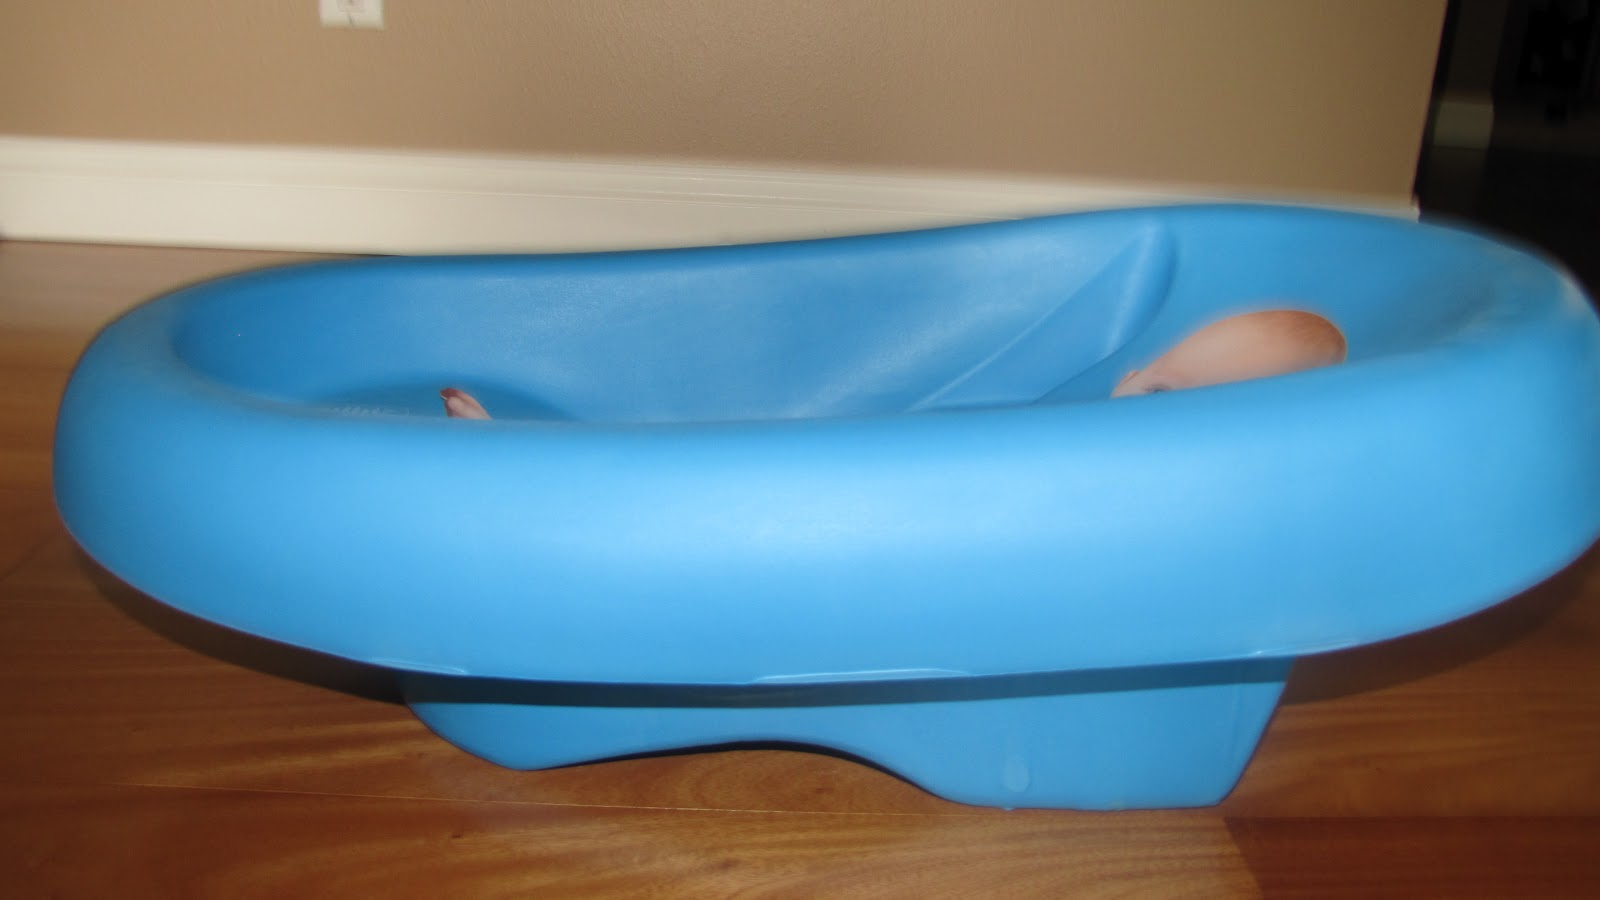 Summer Infant Cushy Cradler Newborn Baby Bath Review & Giveaway